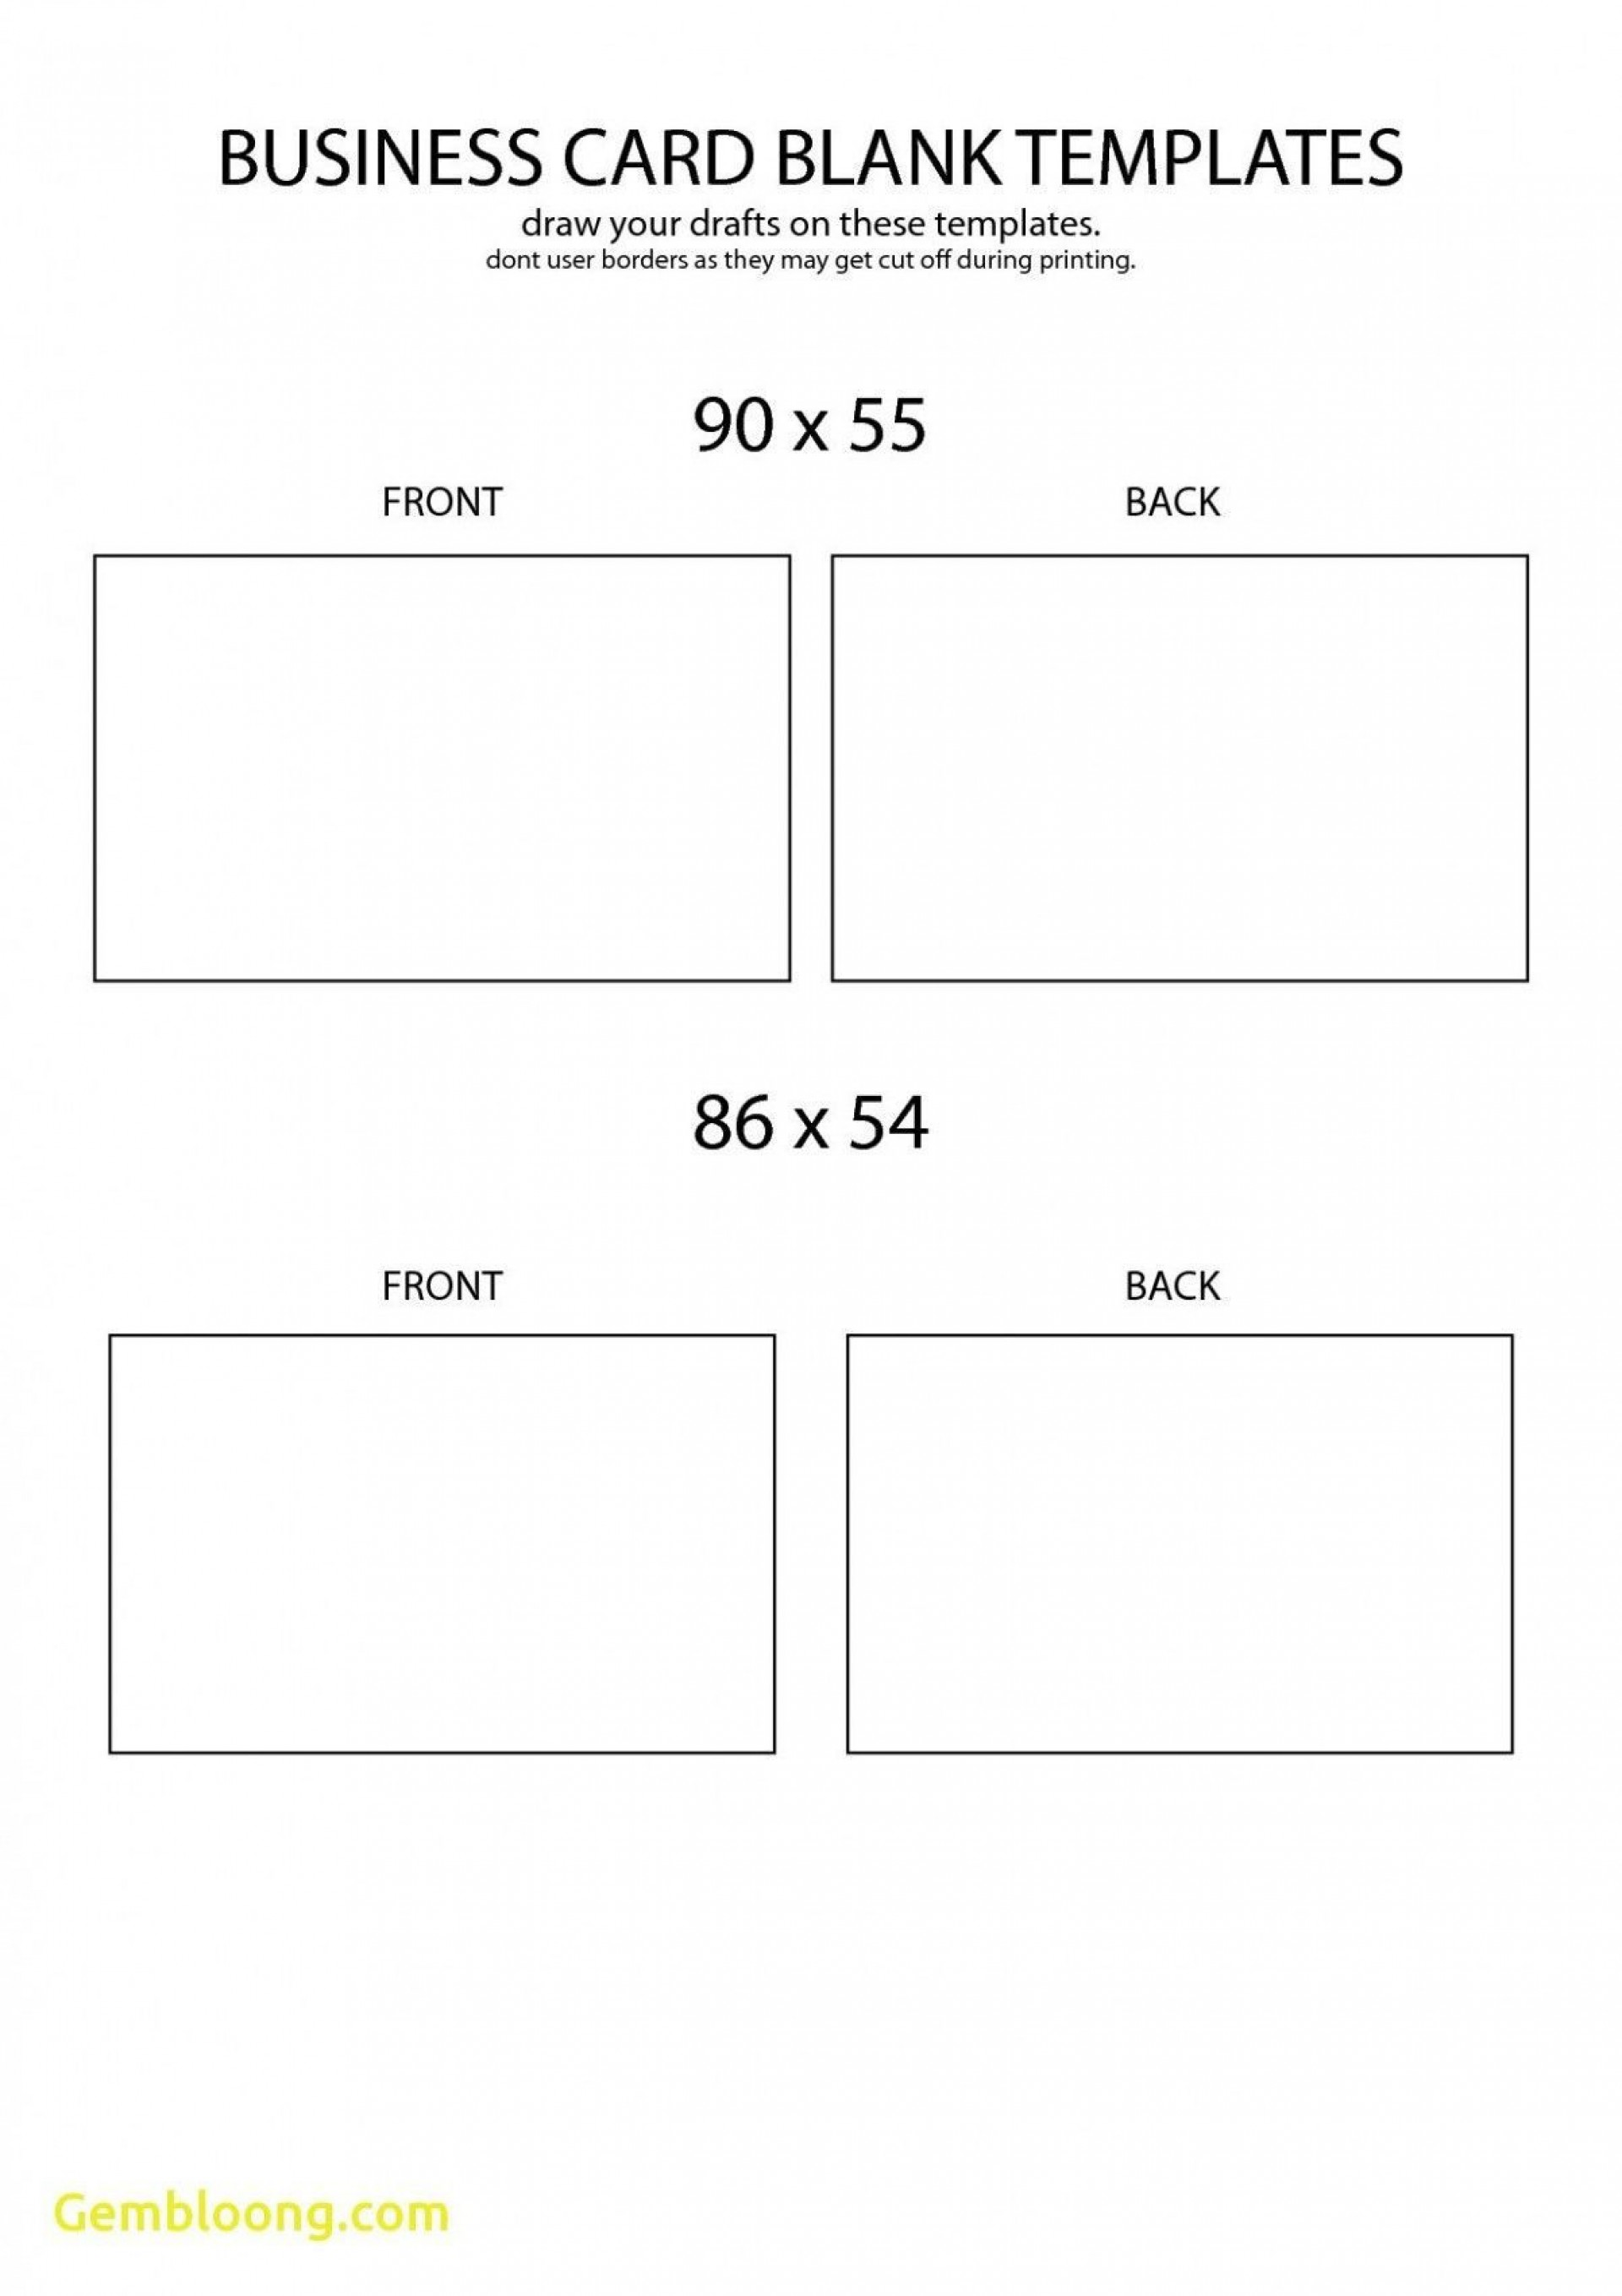 007 Staggering Blank Busines Card Template Photoshop Highest Quality  Free Download Psd1920